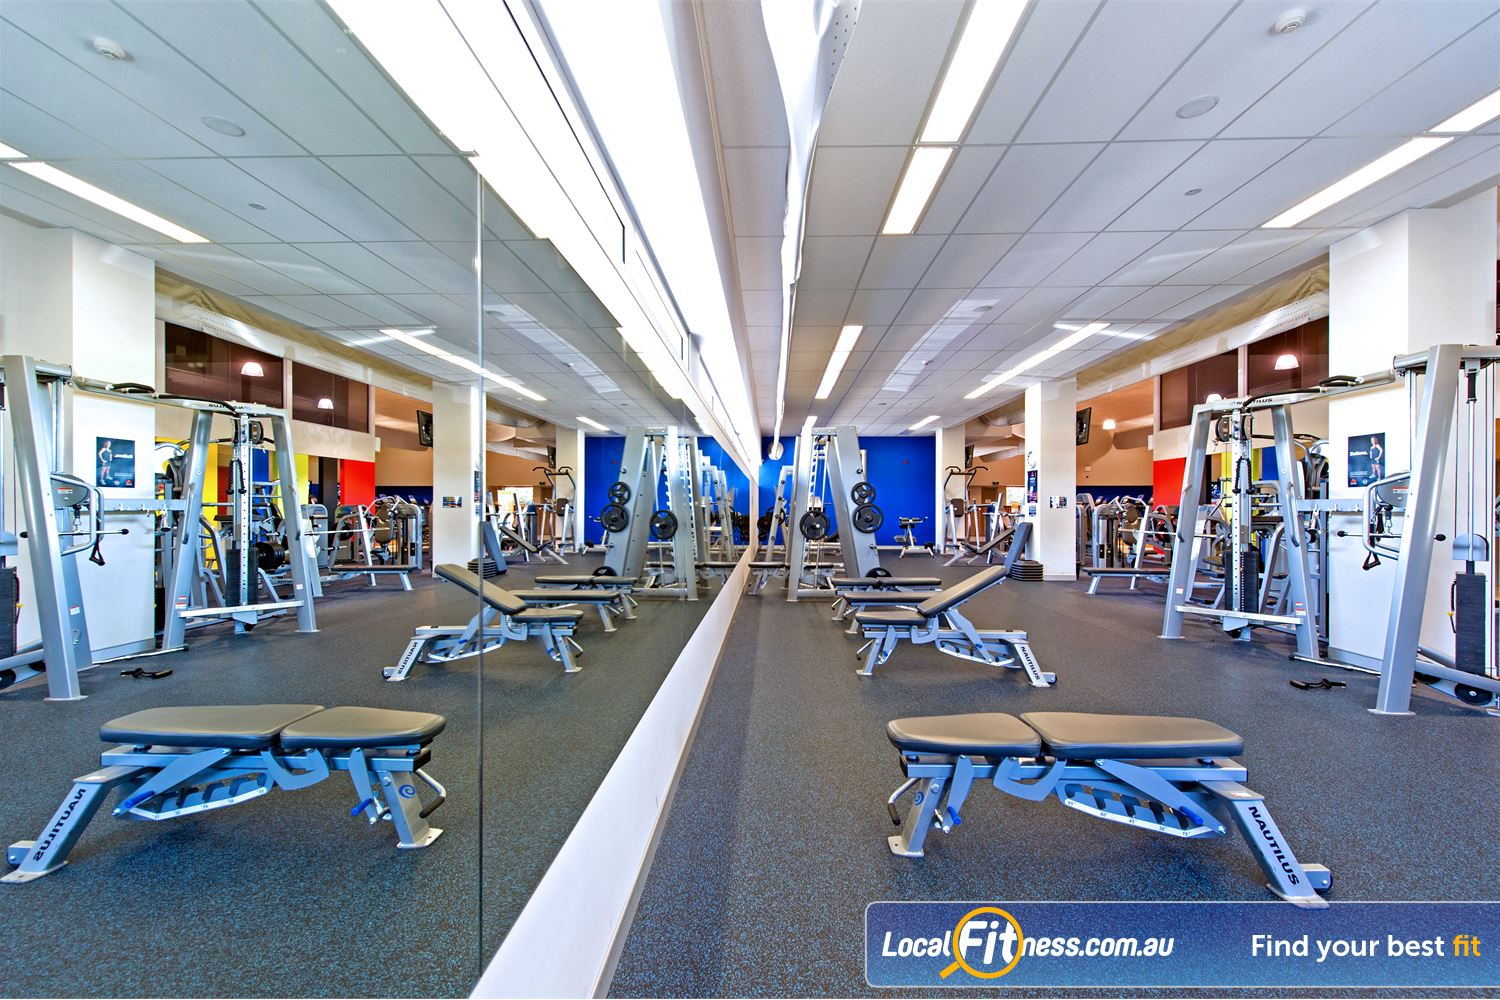 Genesis Fitness Clubs Near North Parramatta Our Parramatta gym includes a full range of dumbbell, barbell and benches.